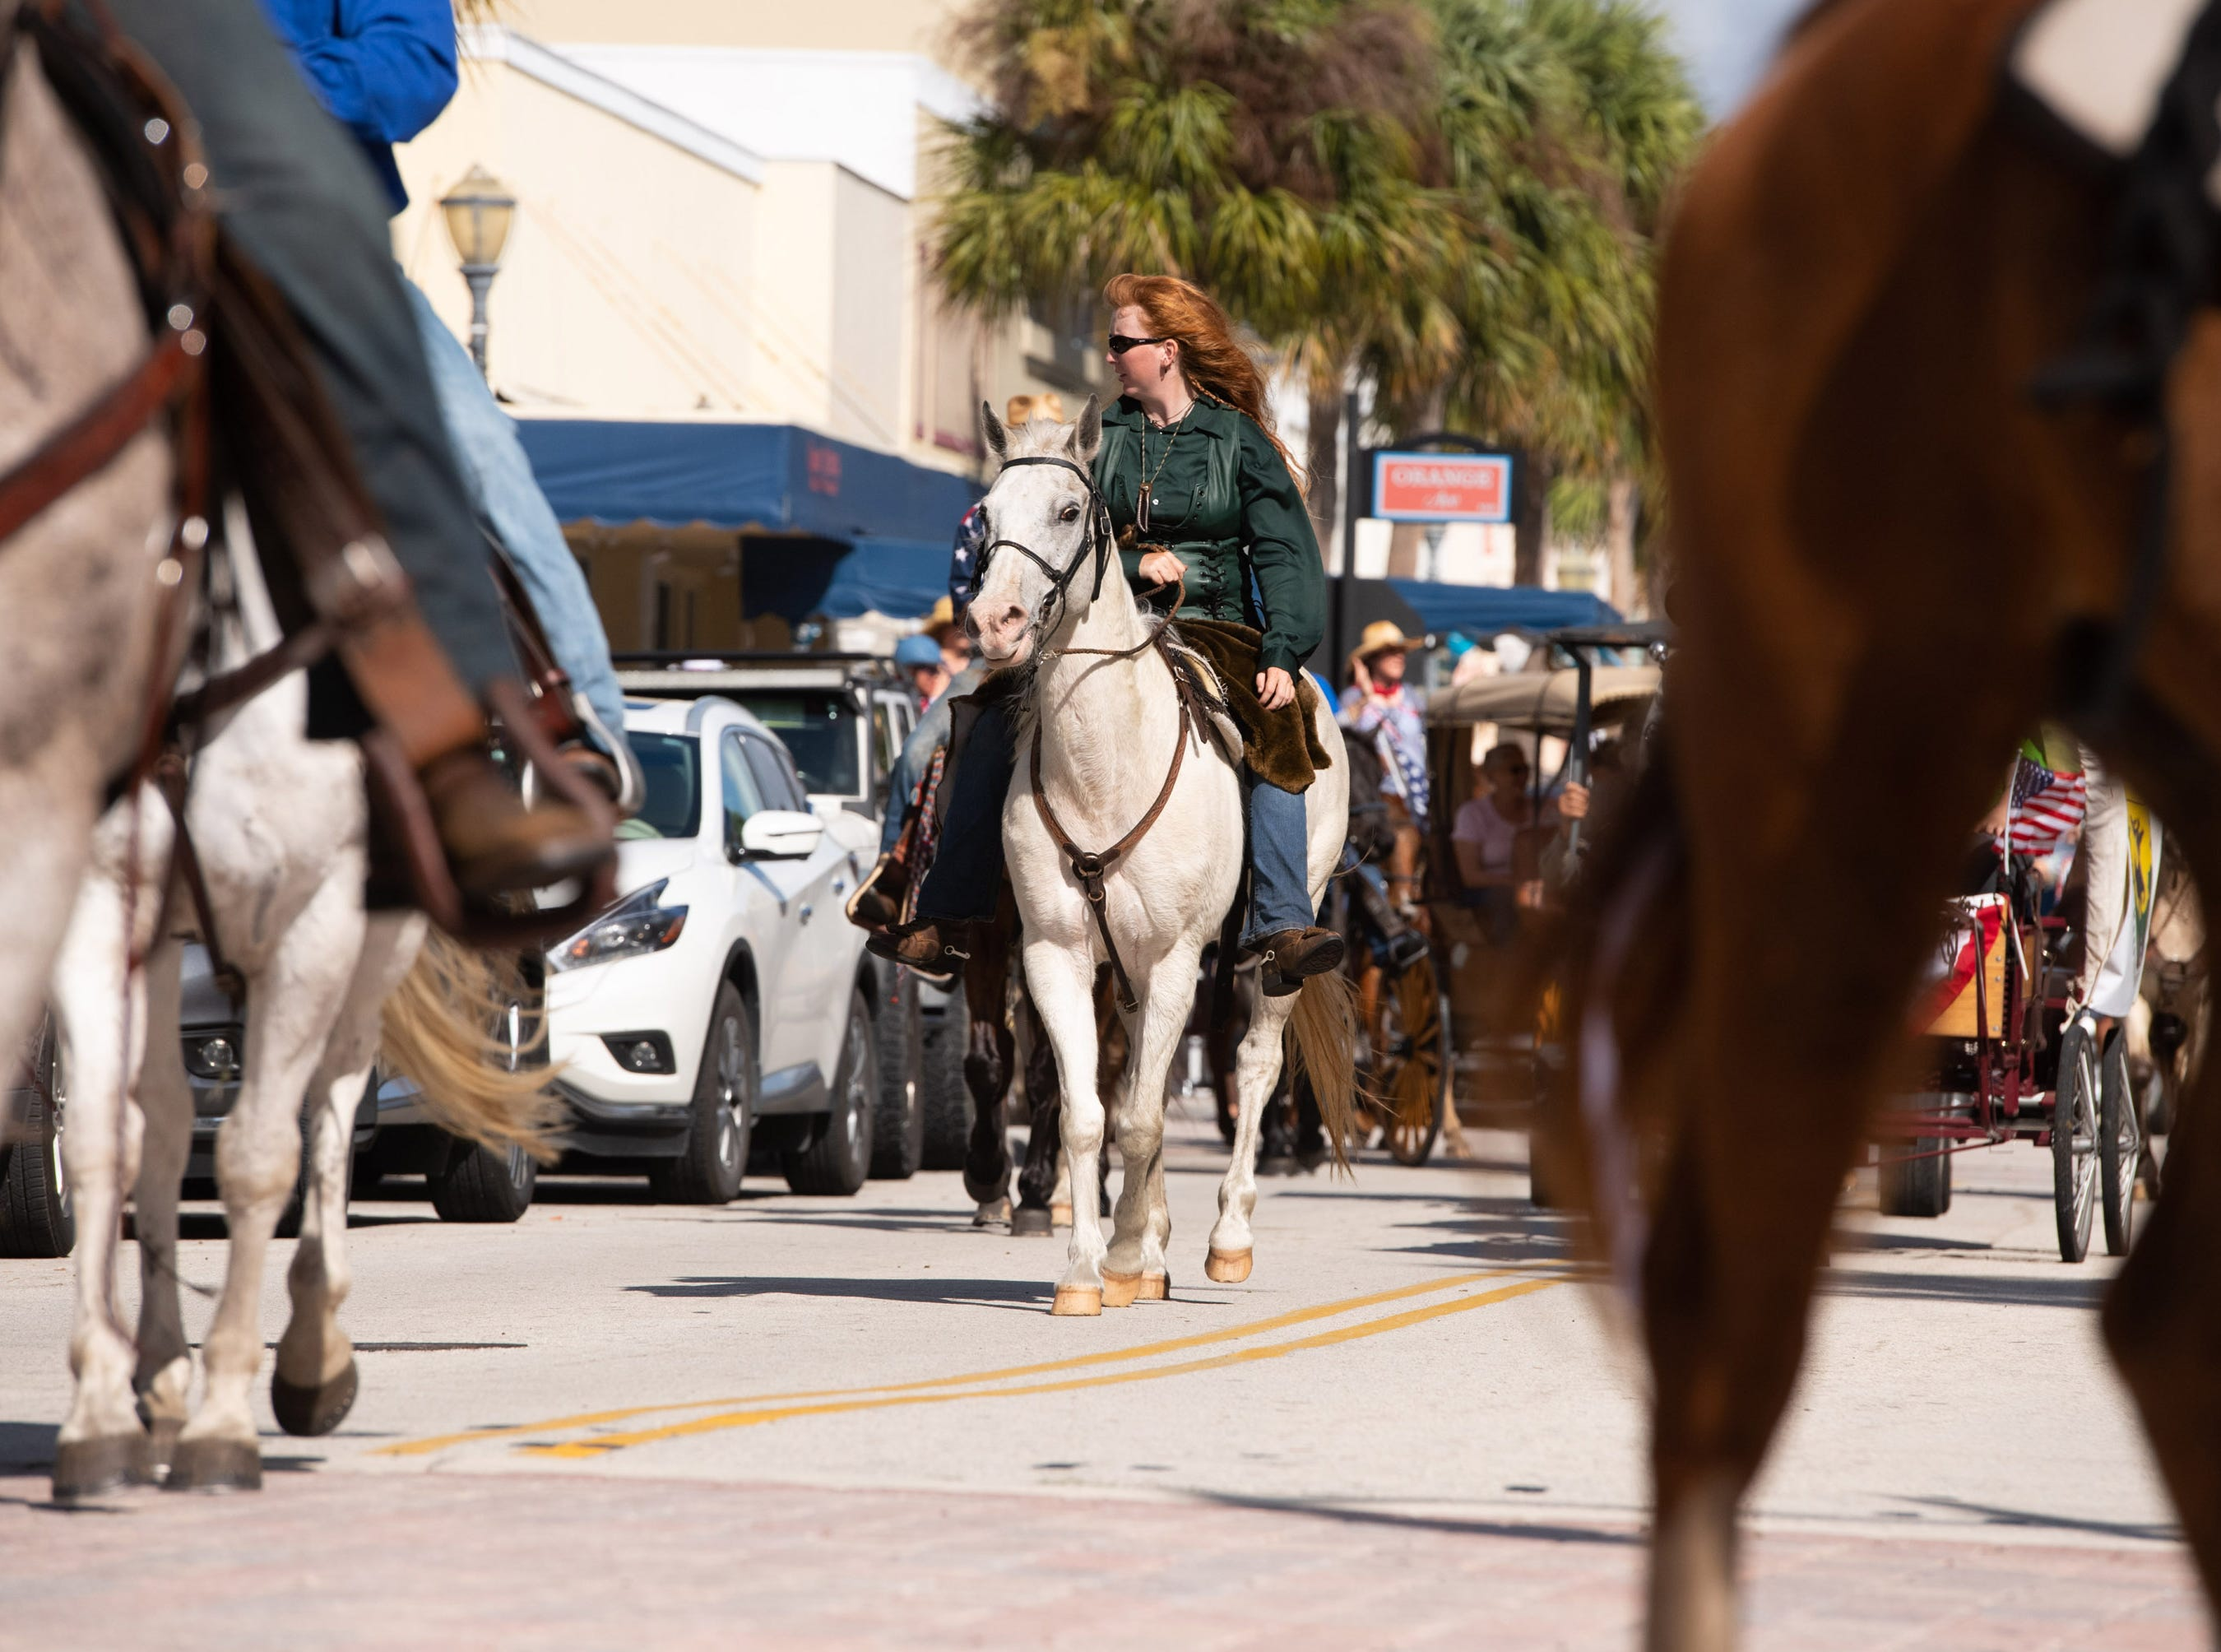 The 32nd annual Florida Cracker Trail Ride across the state parade finalizing the end of the ride takes place Saturday, Feb. 23, 2019, in Fort Pierce.